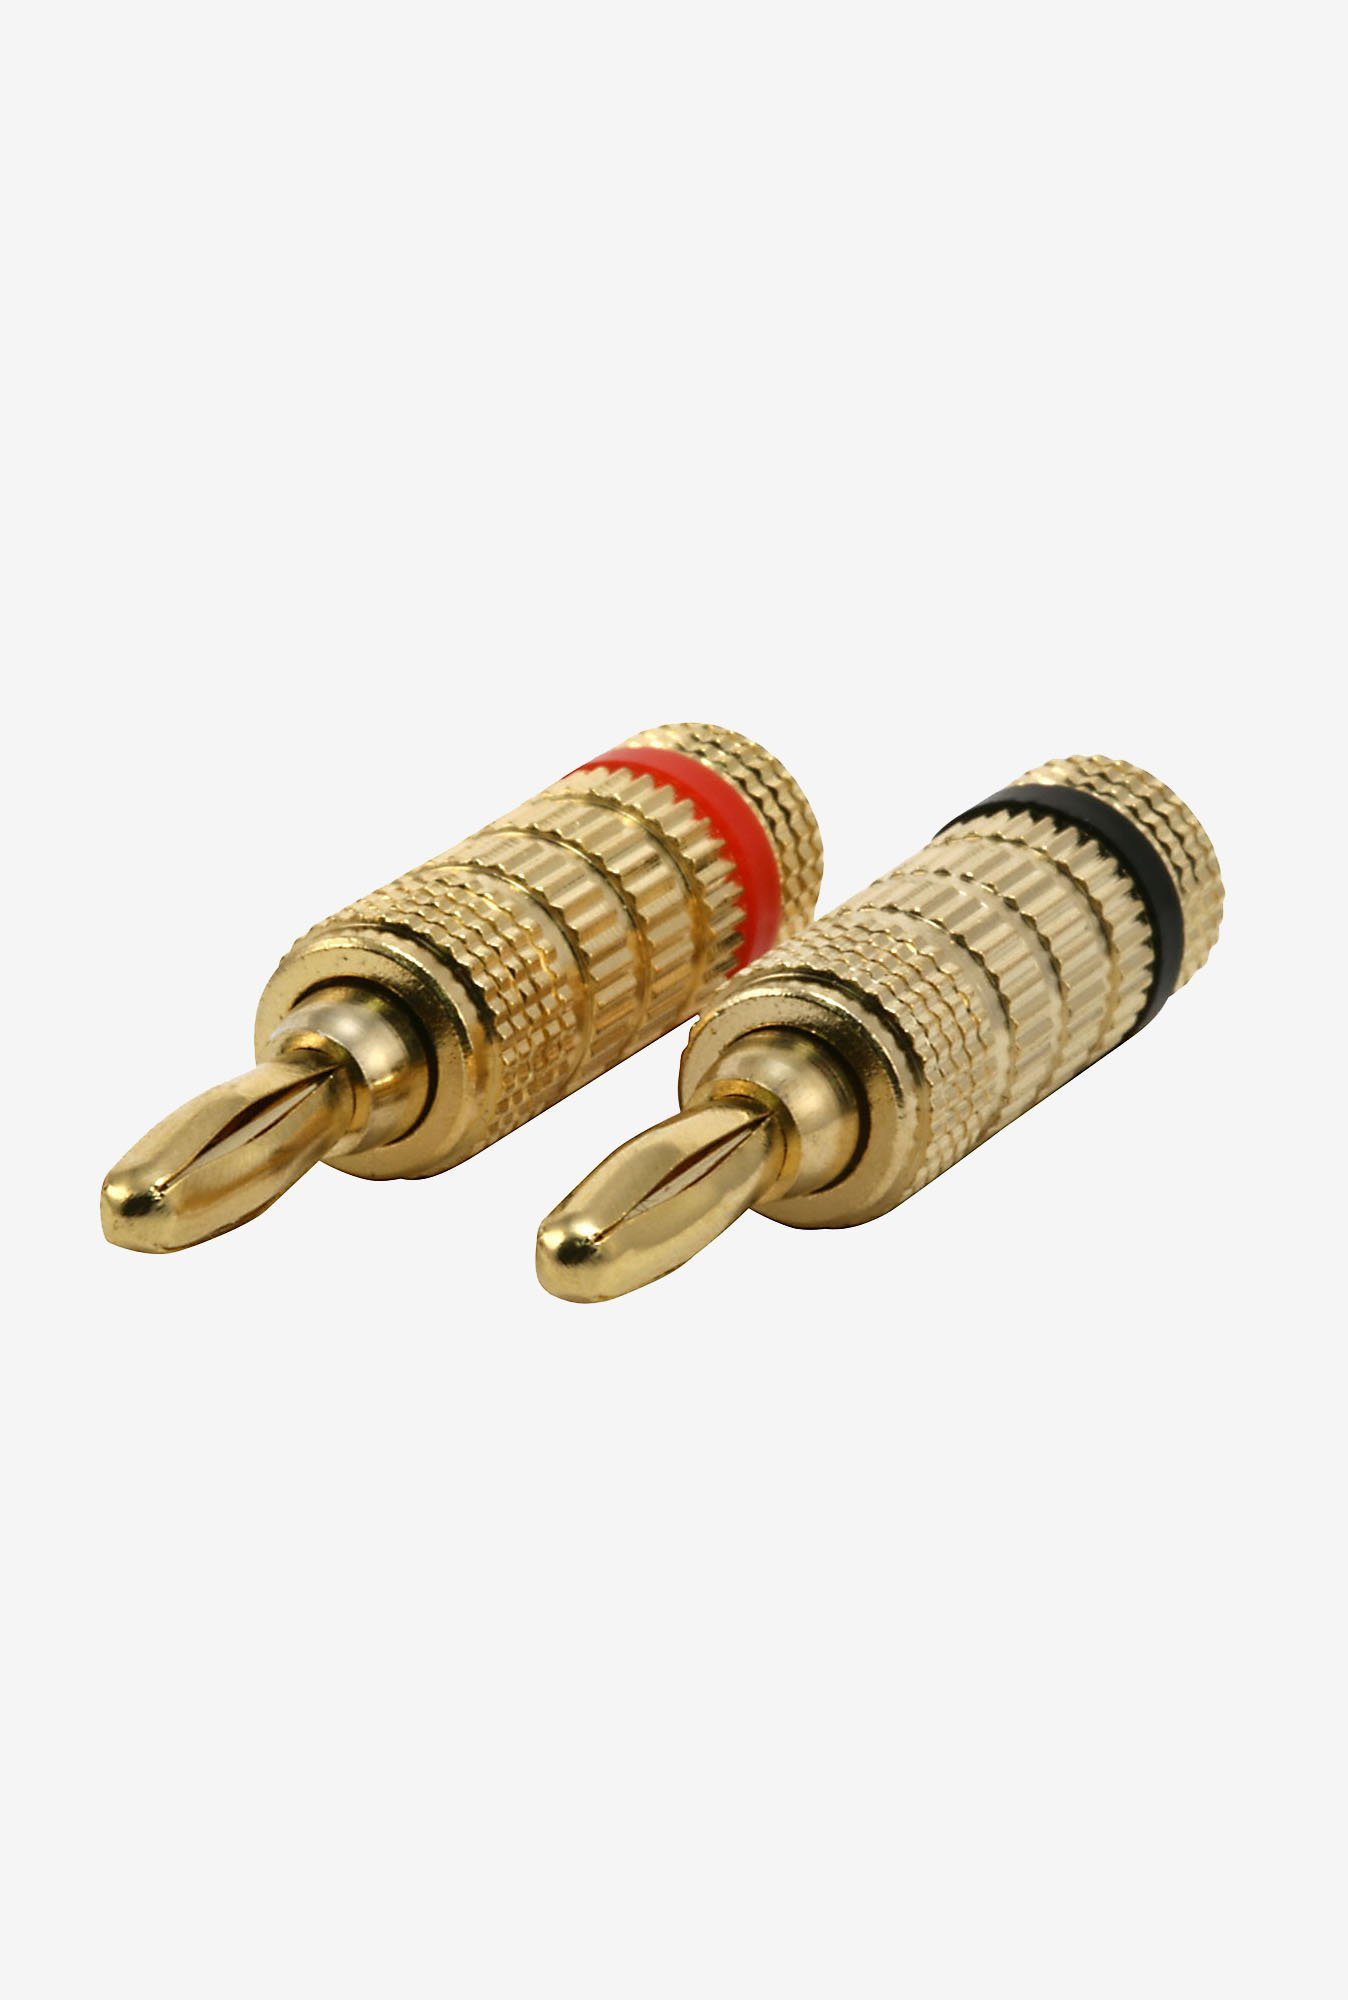 Monoprice 102801 Pair of Copper Speaker Banana Plugs (Gold)